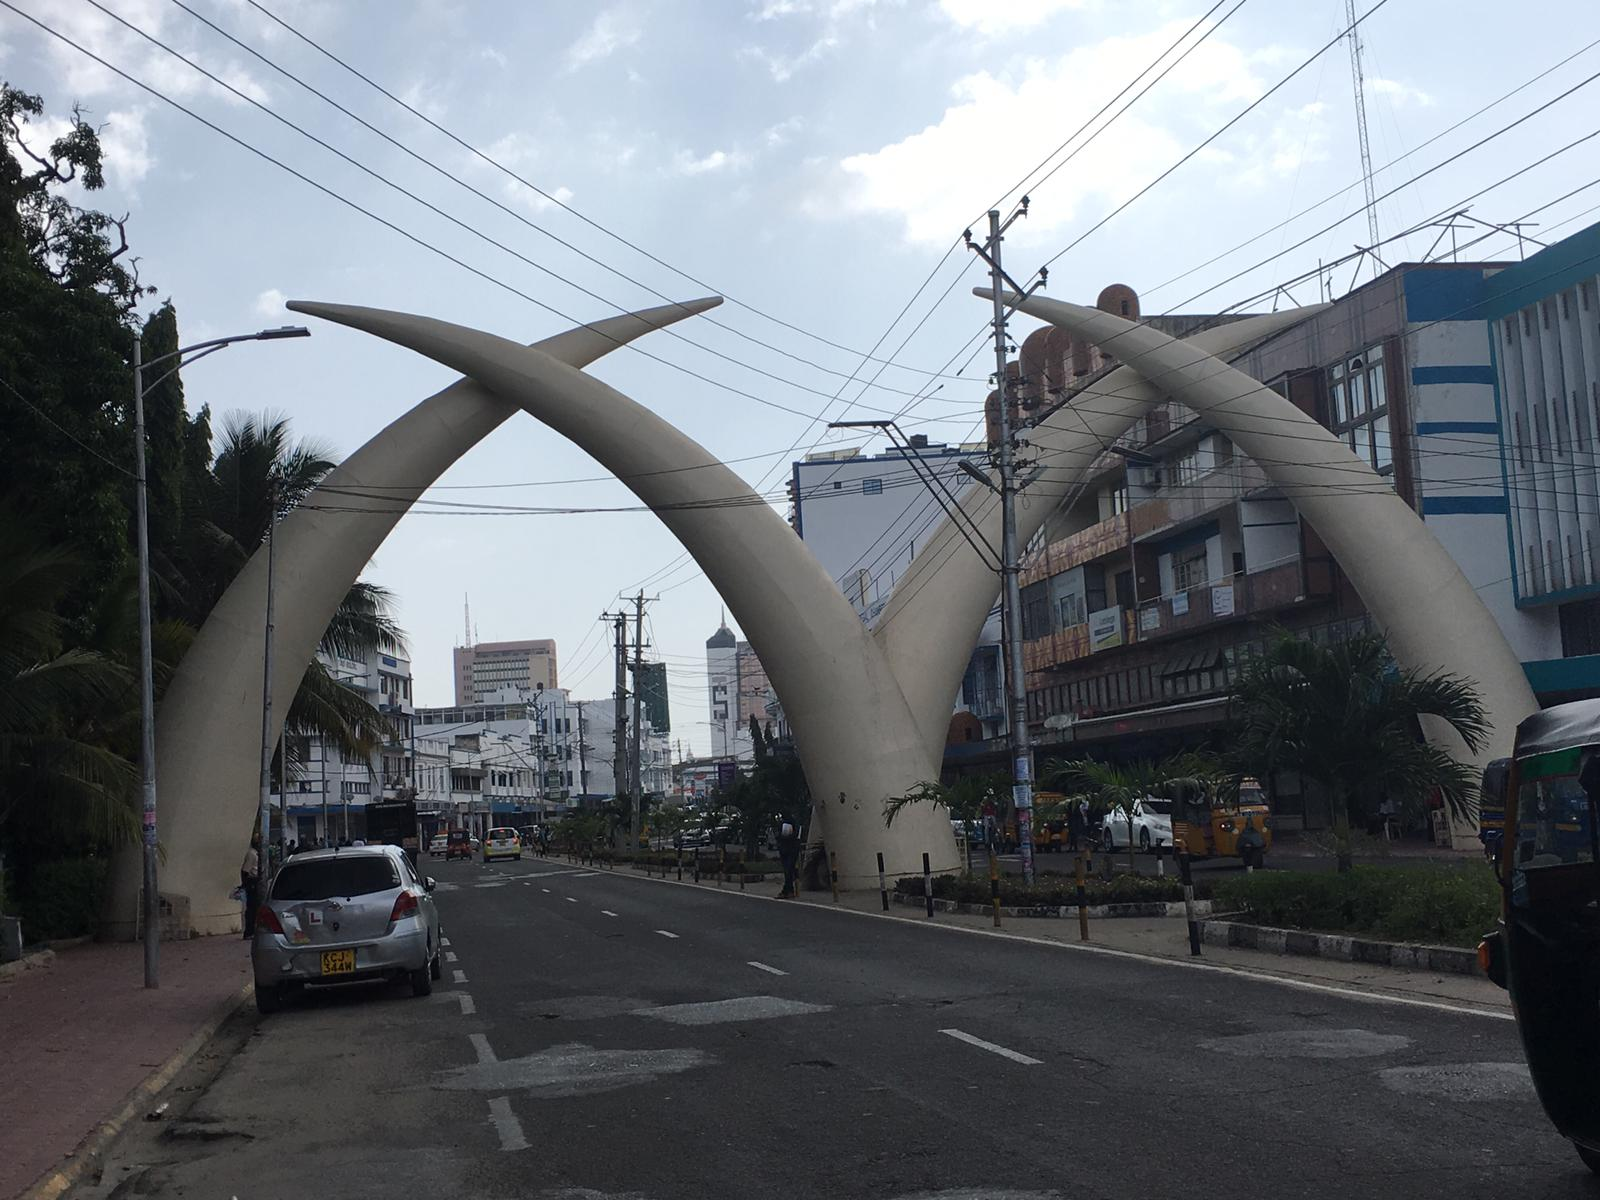 Tusks in downtown Mombasa